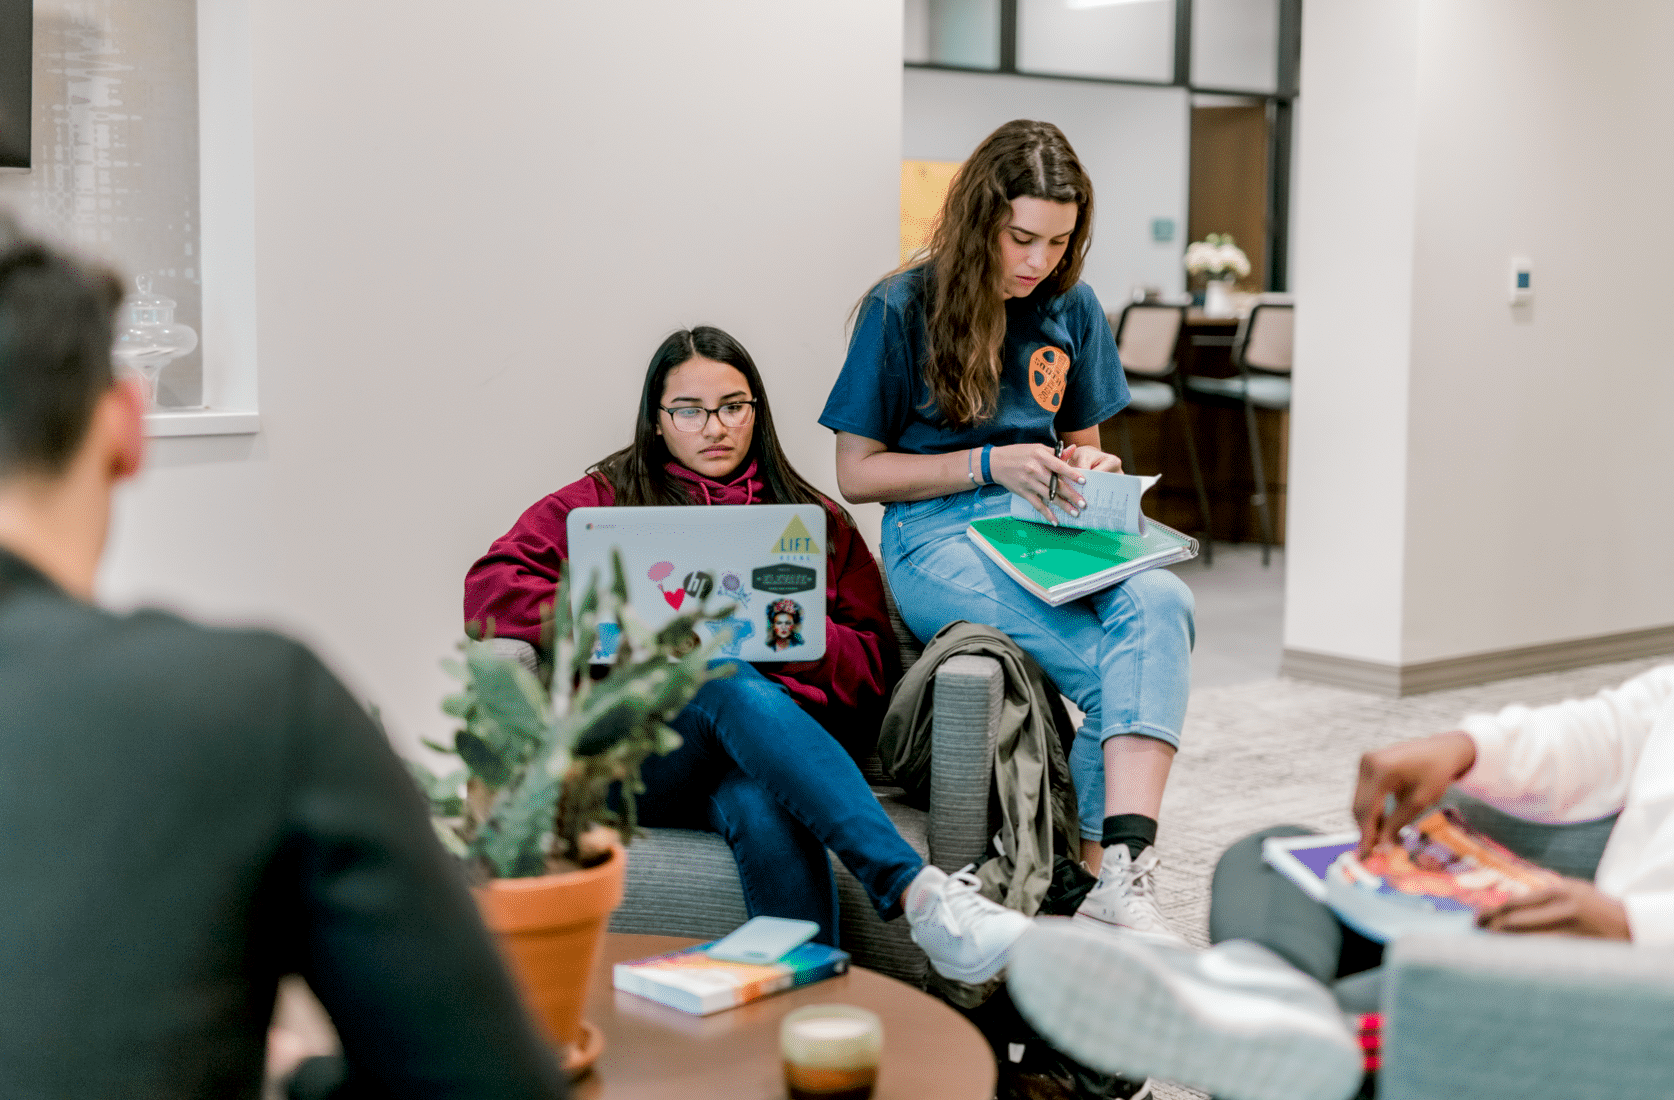 A student sits in a chair and works on her laptop; her peer sits on the armrest of the chair and goes through her notes.